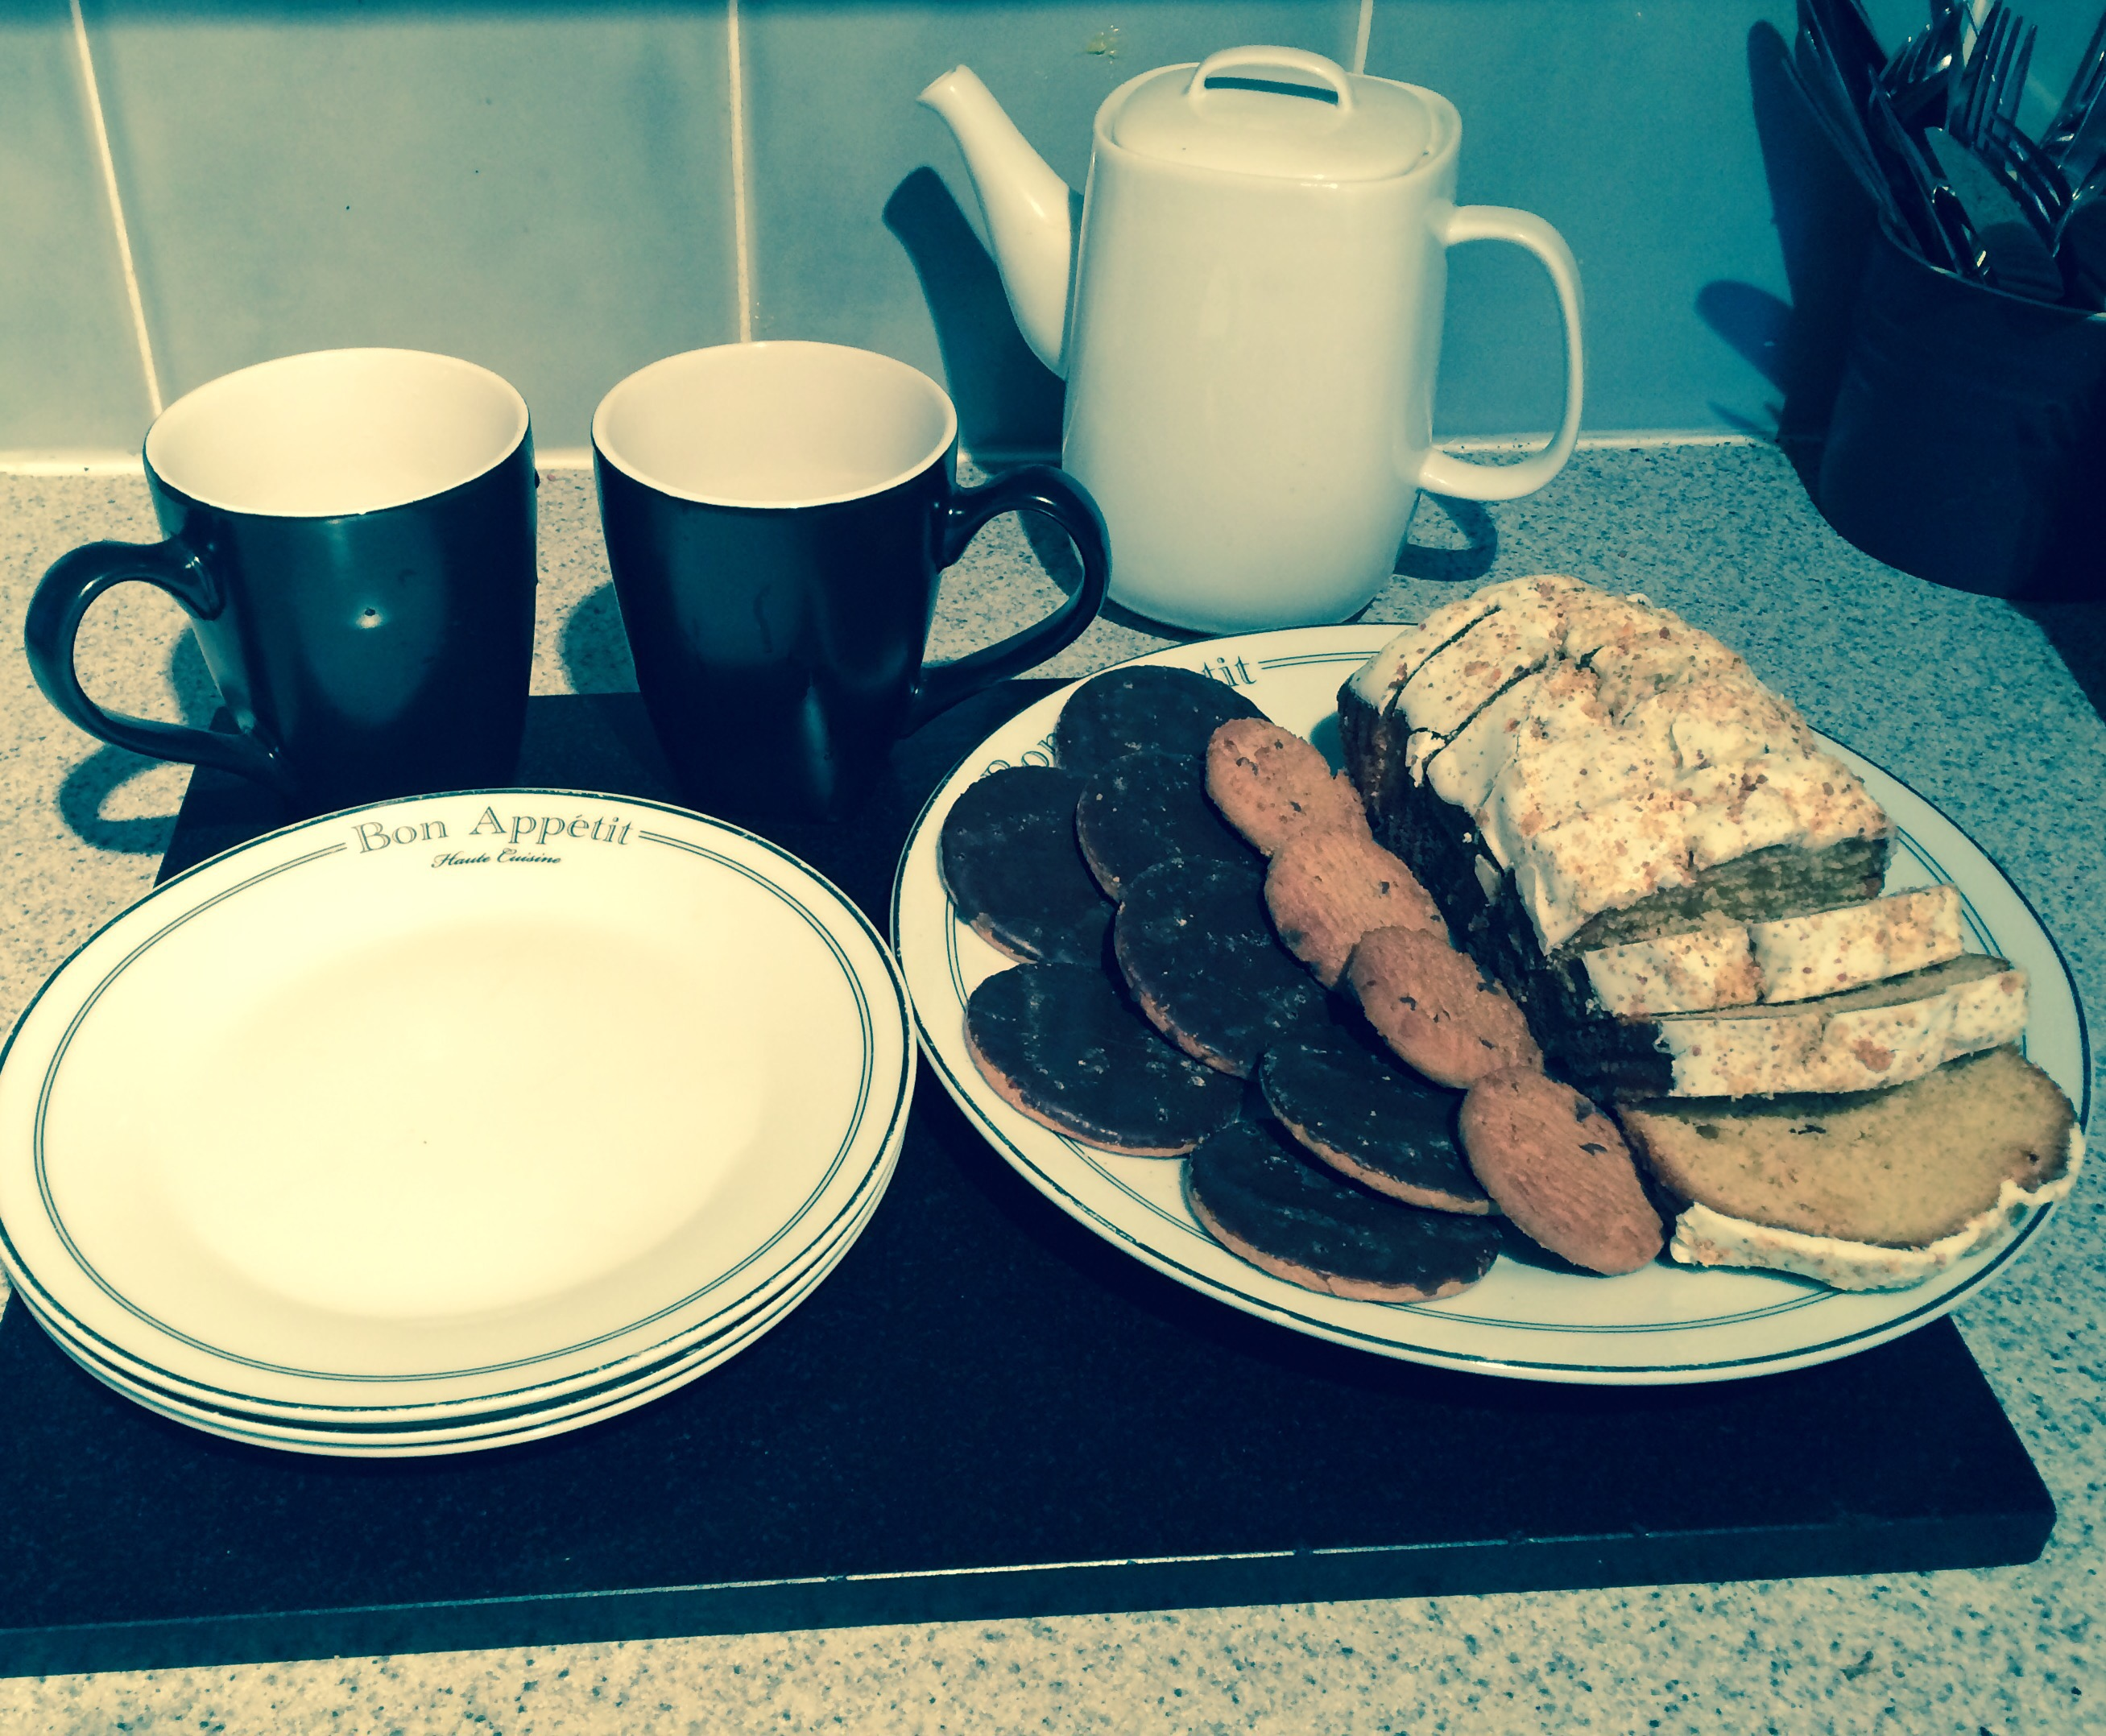 tea and biscuits for the Vicar